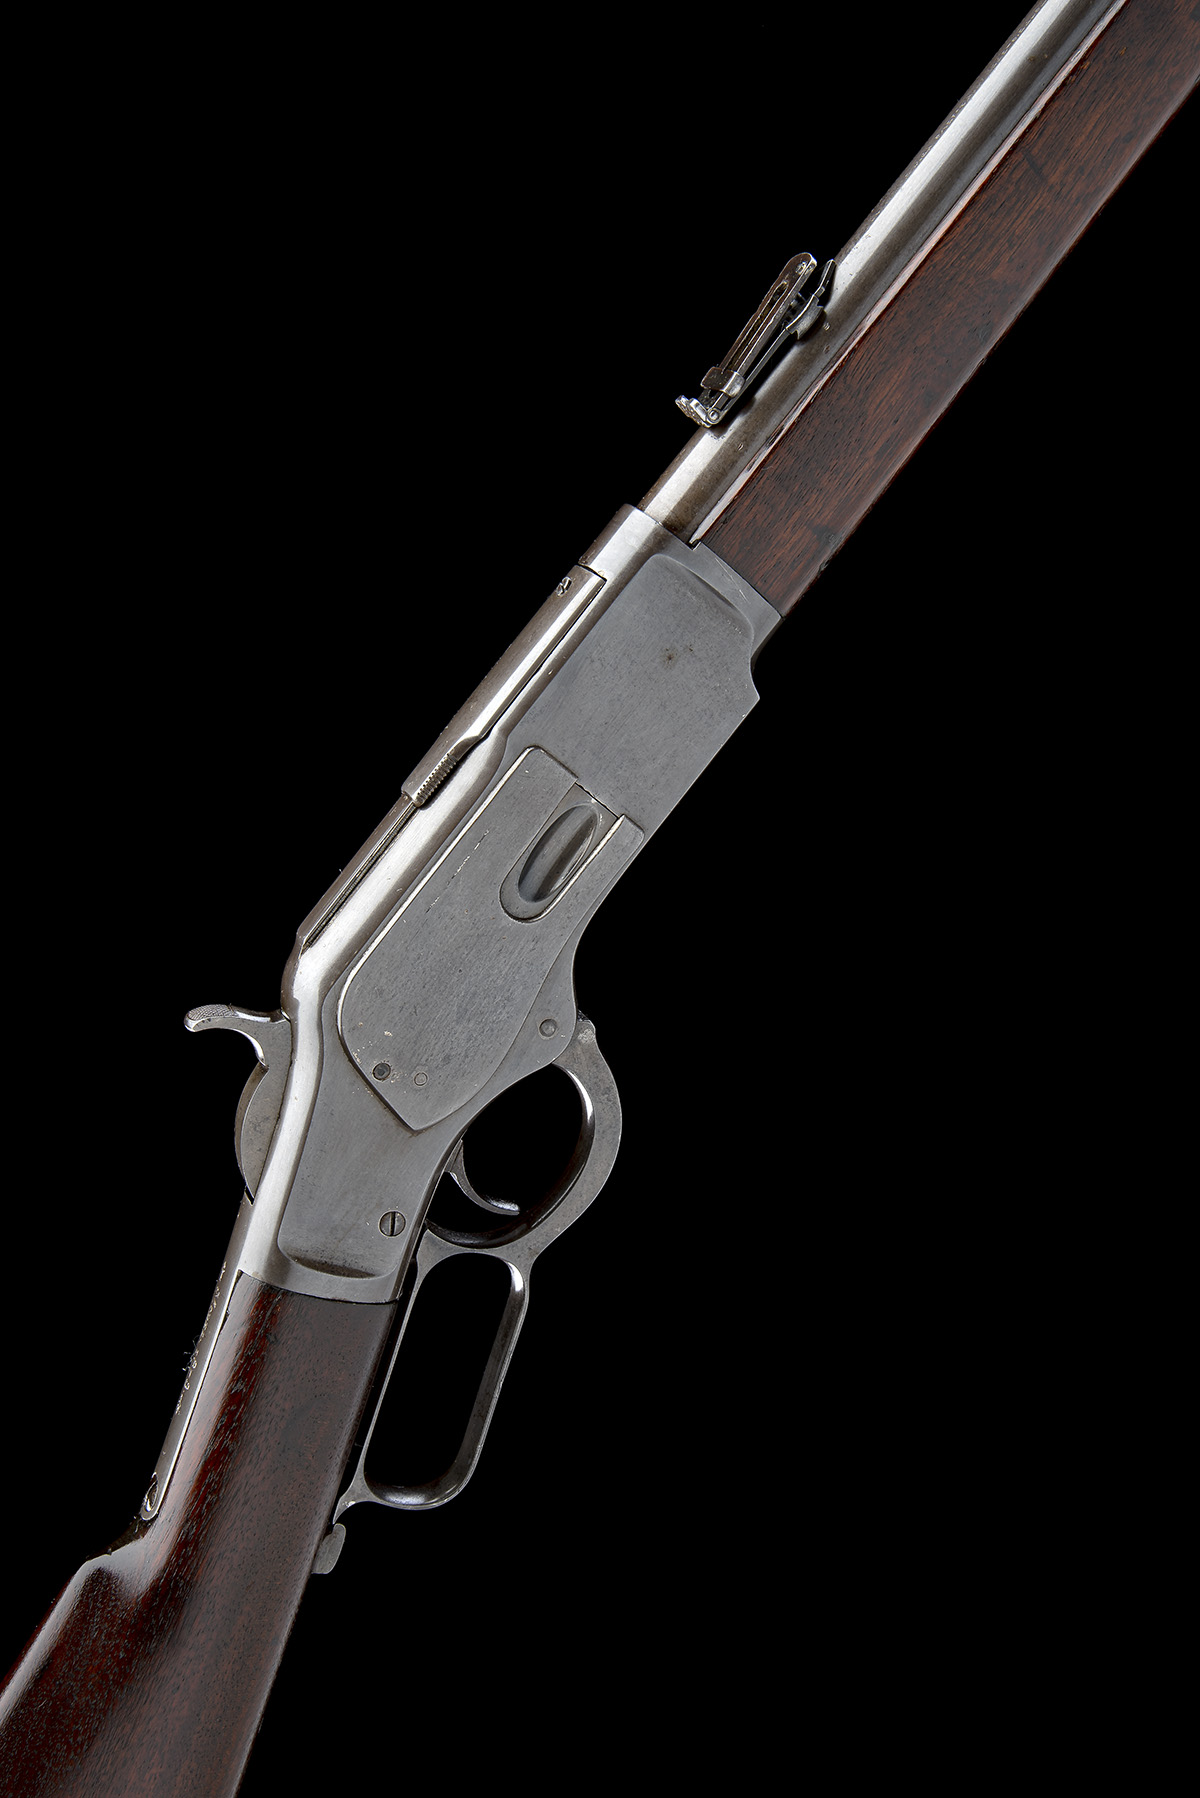 WINCHESTER REPEATING ARMS, USA A .44 W.C.F. 'MODEL 1873' LEVER-ACTION REPEATING SPORTING RIFLE,